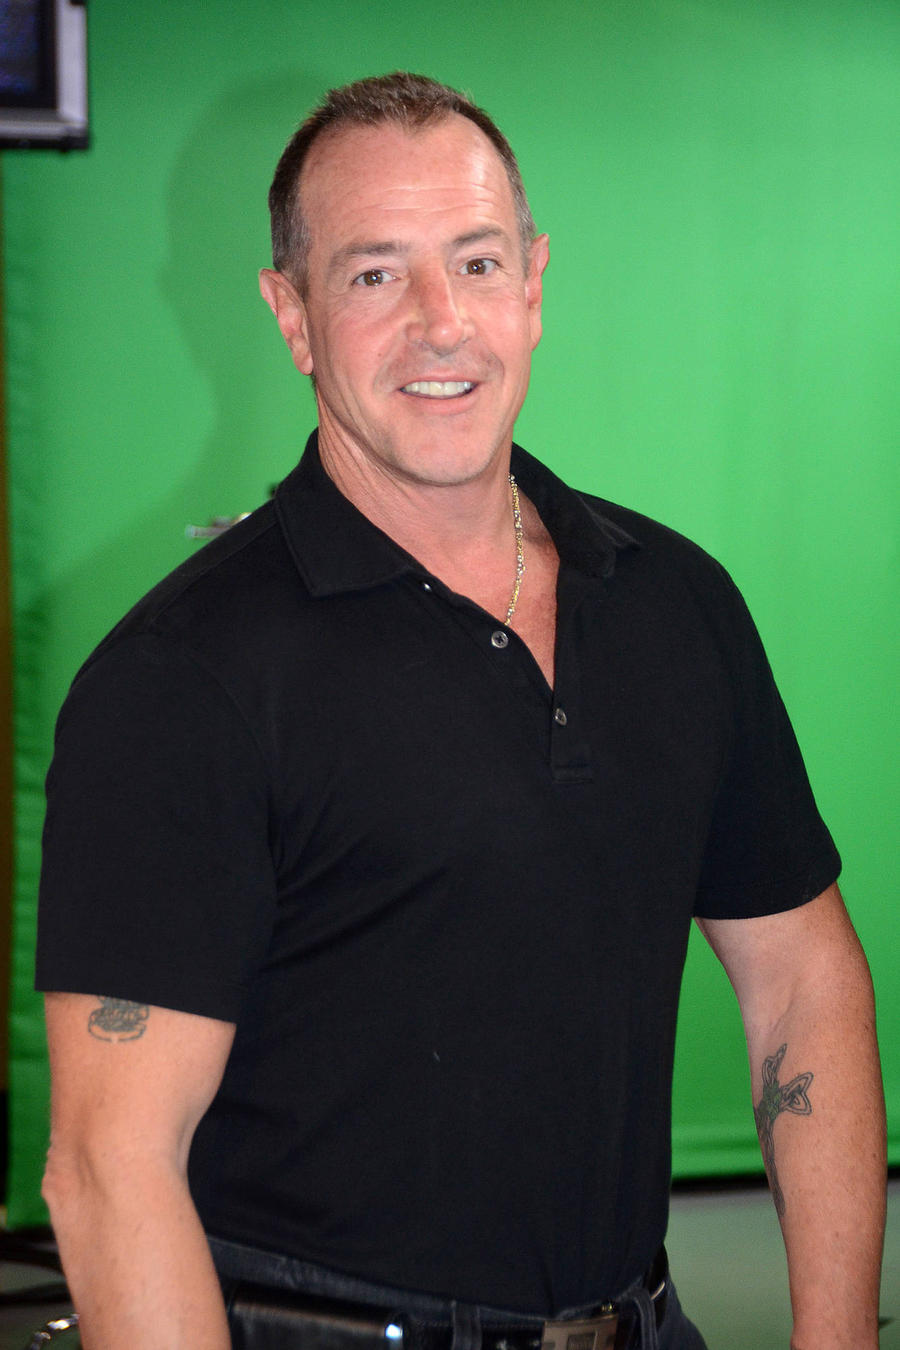 Michael Lohan Writes Open Letter About Drug Addiction To President Trump